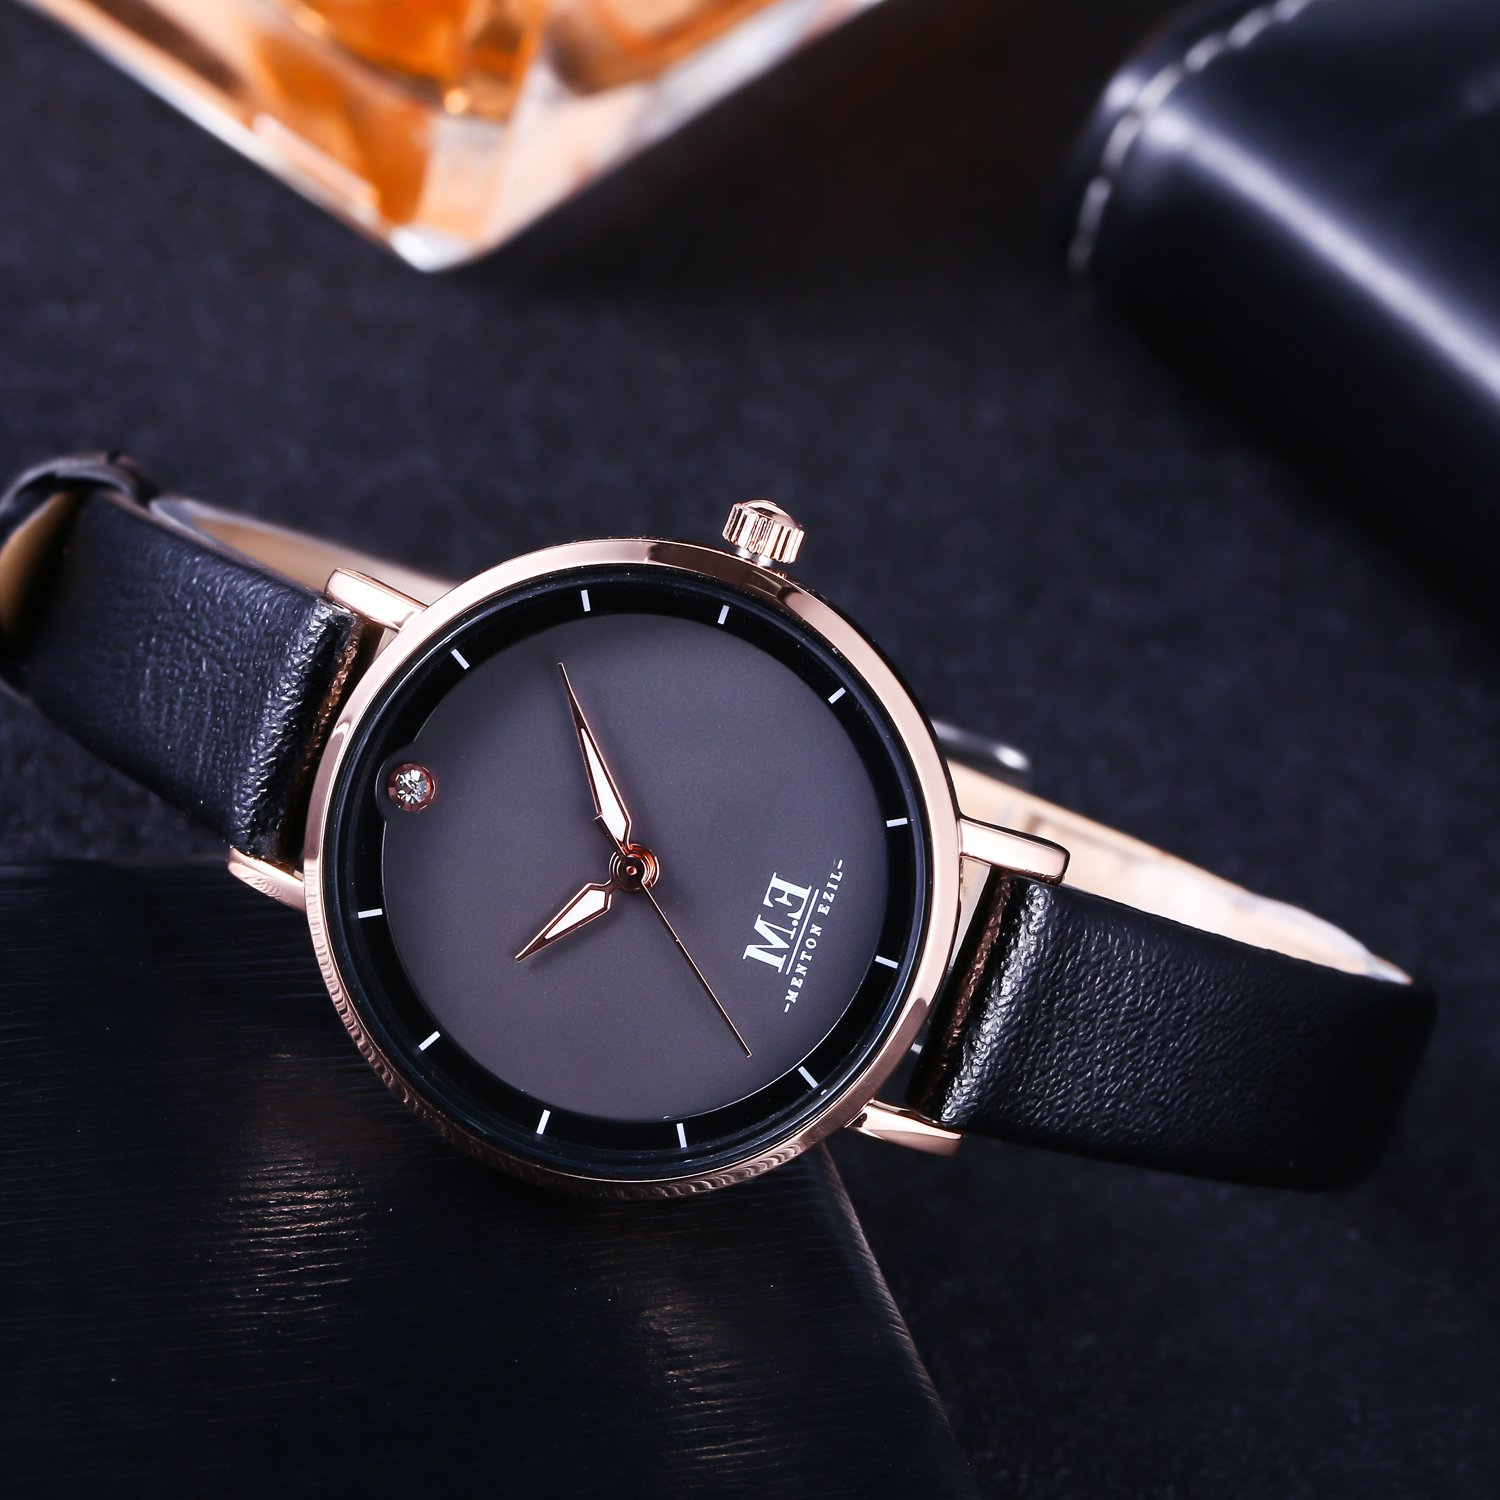 Amazon.com: Women Mini Wrist Watch Black Leather Strap Quartz Movement by M.E, Simple and Classic, Waterproof: M.E: Watches